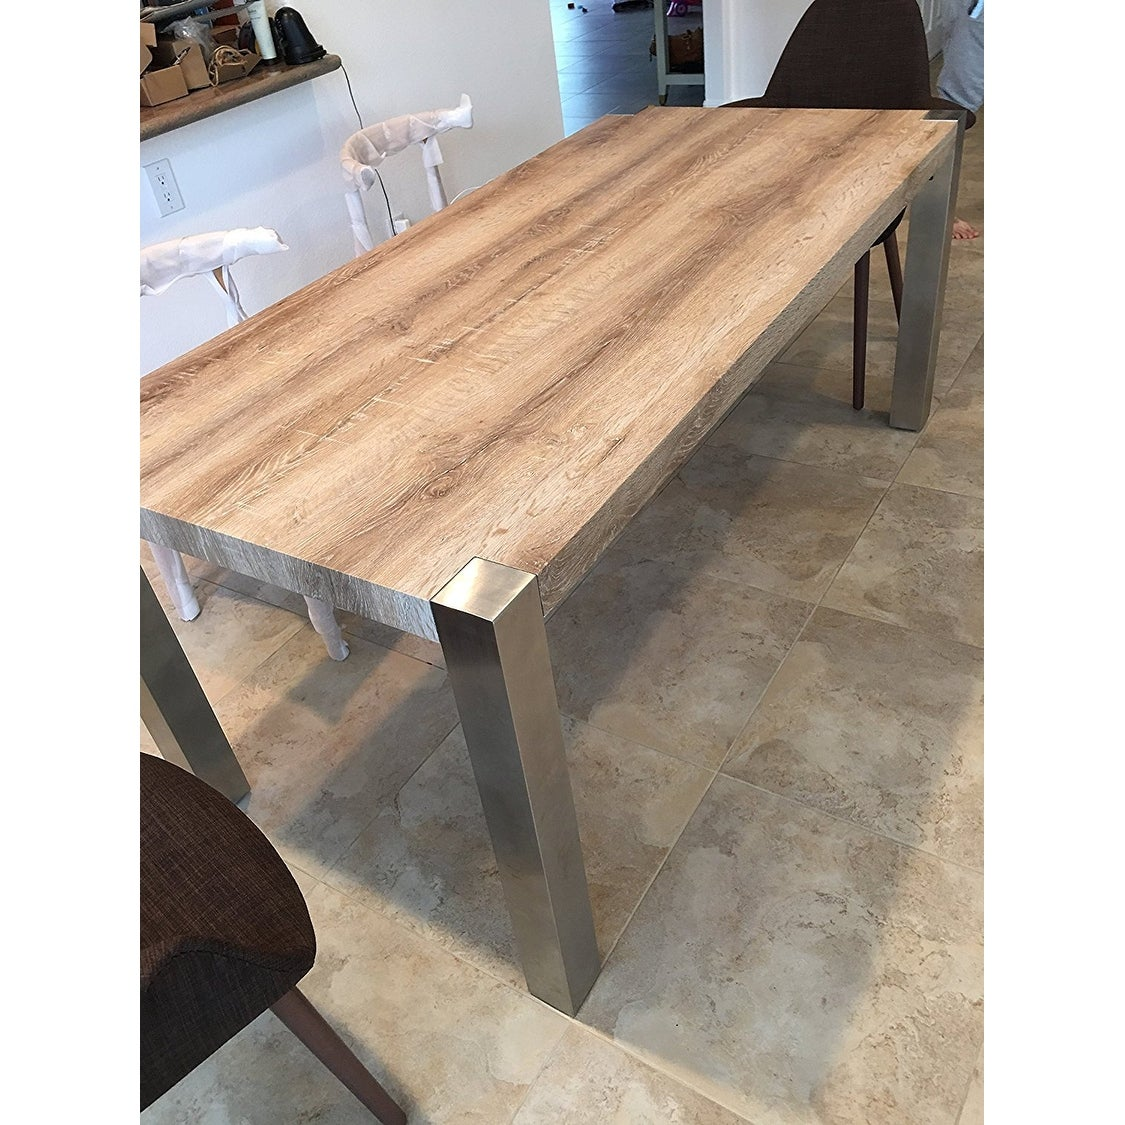 Shop 2xhome modern designer wood top dining table with metal legs strong sturdy frame dining room table 70 75 inches free shipping today